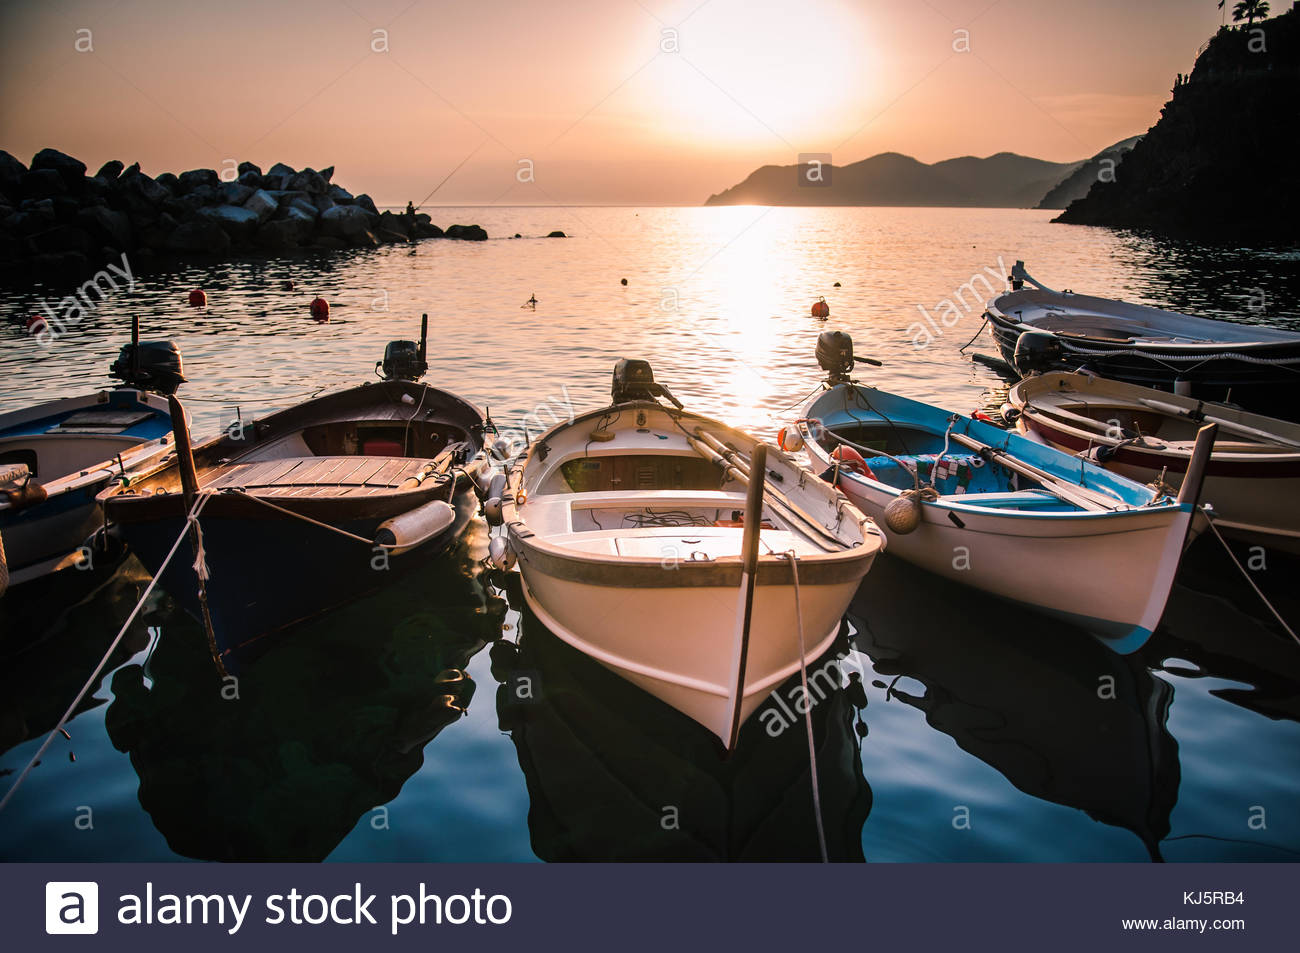 Row of boats at sunset - Stock Image